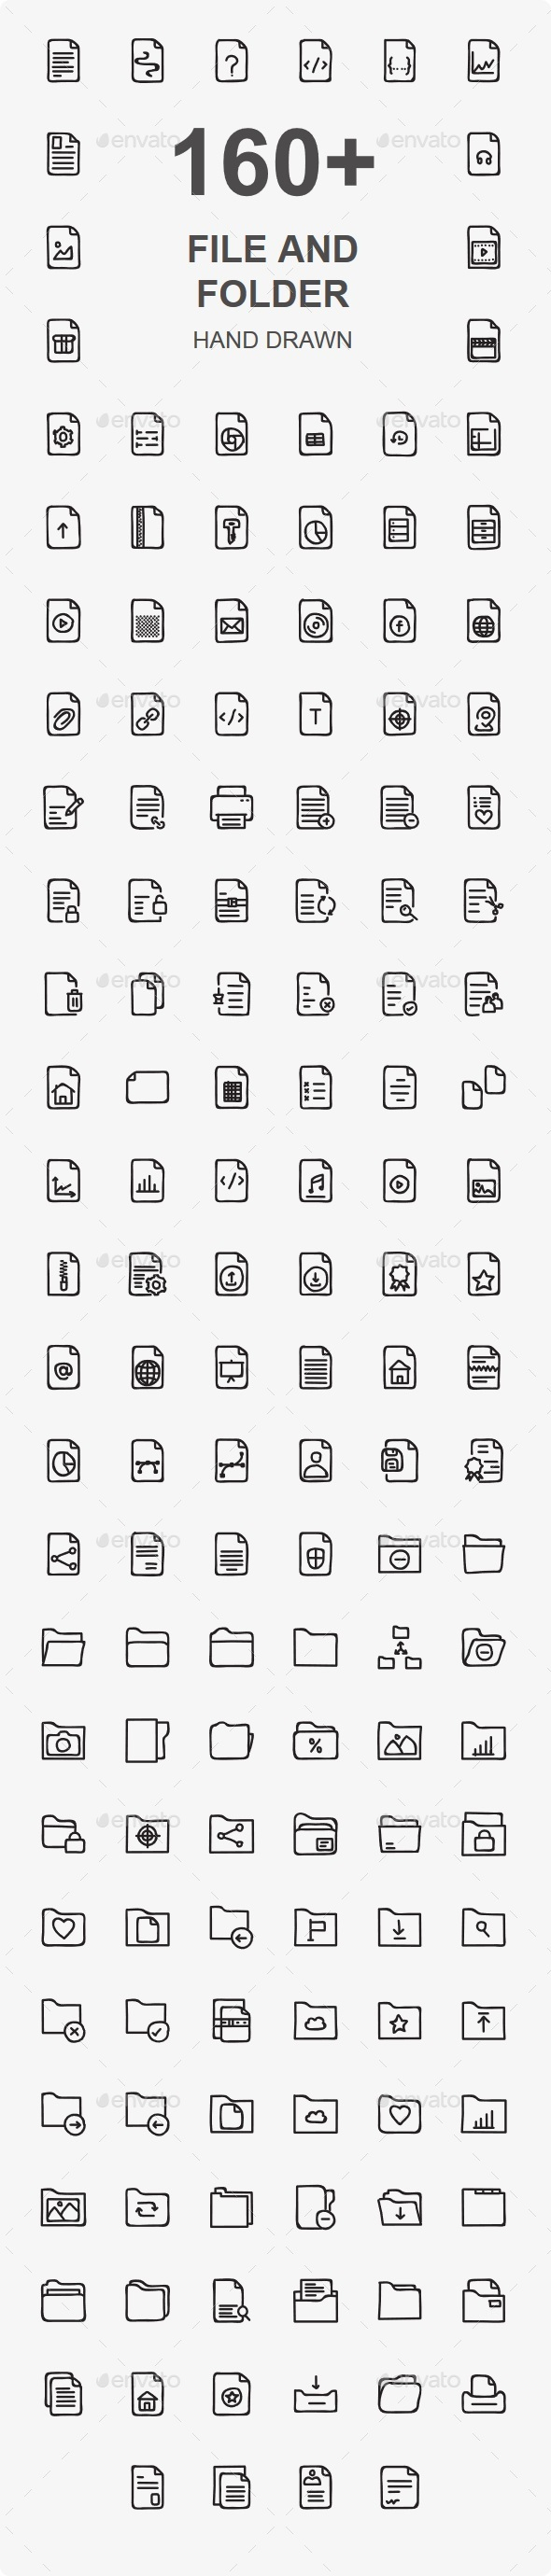 GraphicRiver Files and Folders Hand Drawn icon 20445105